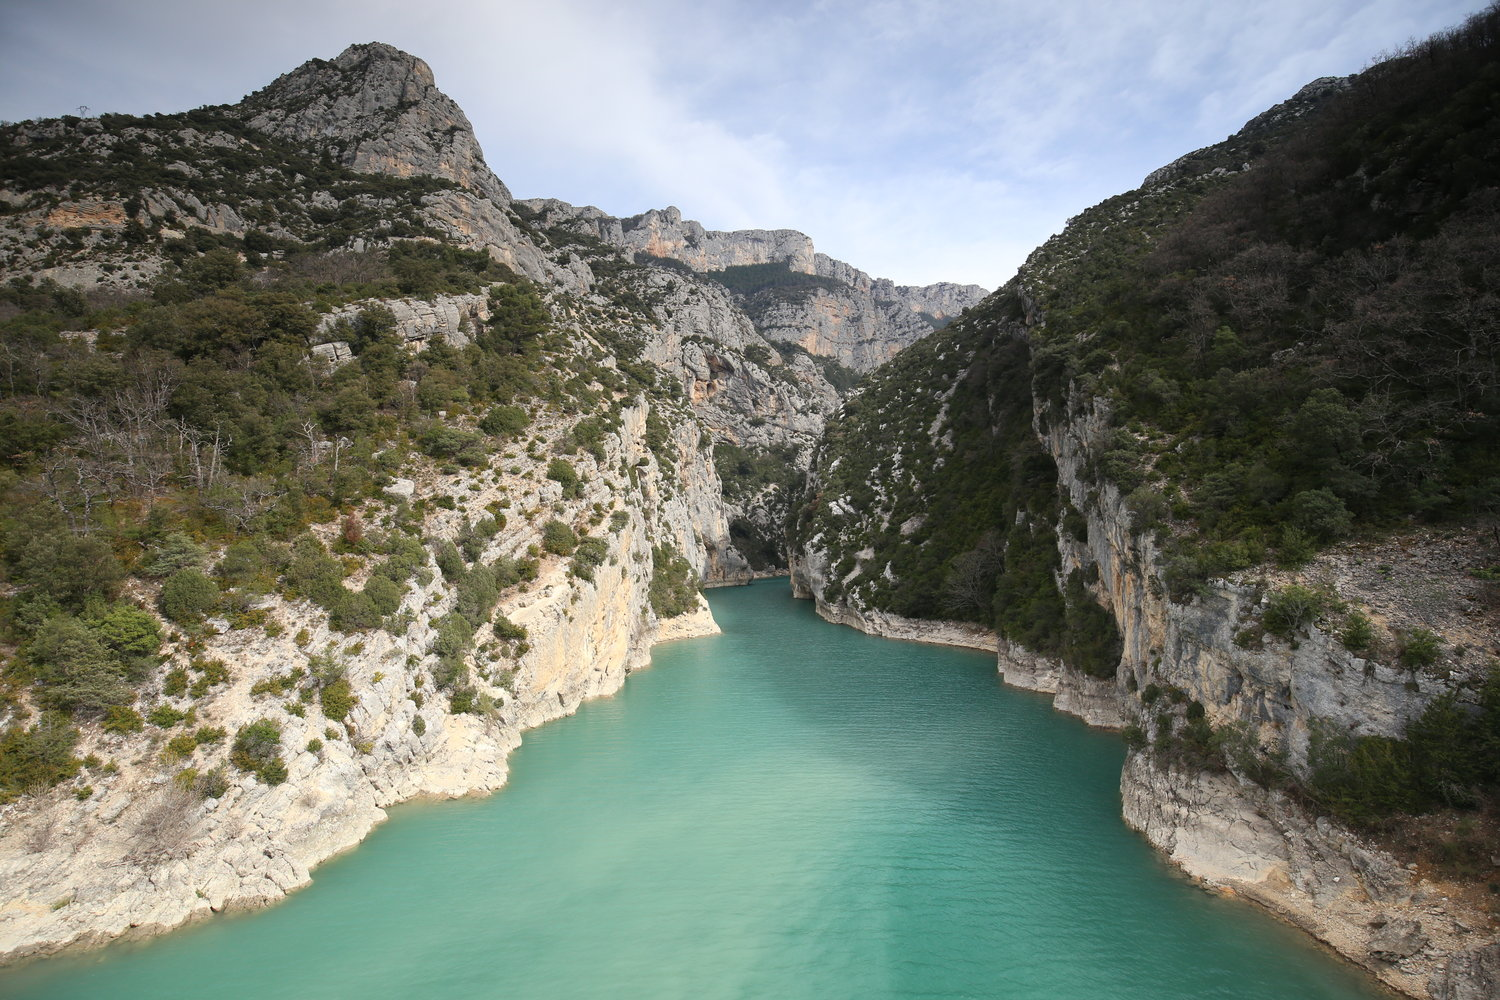 BLISS IN THE VERDON GORGE